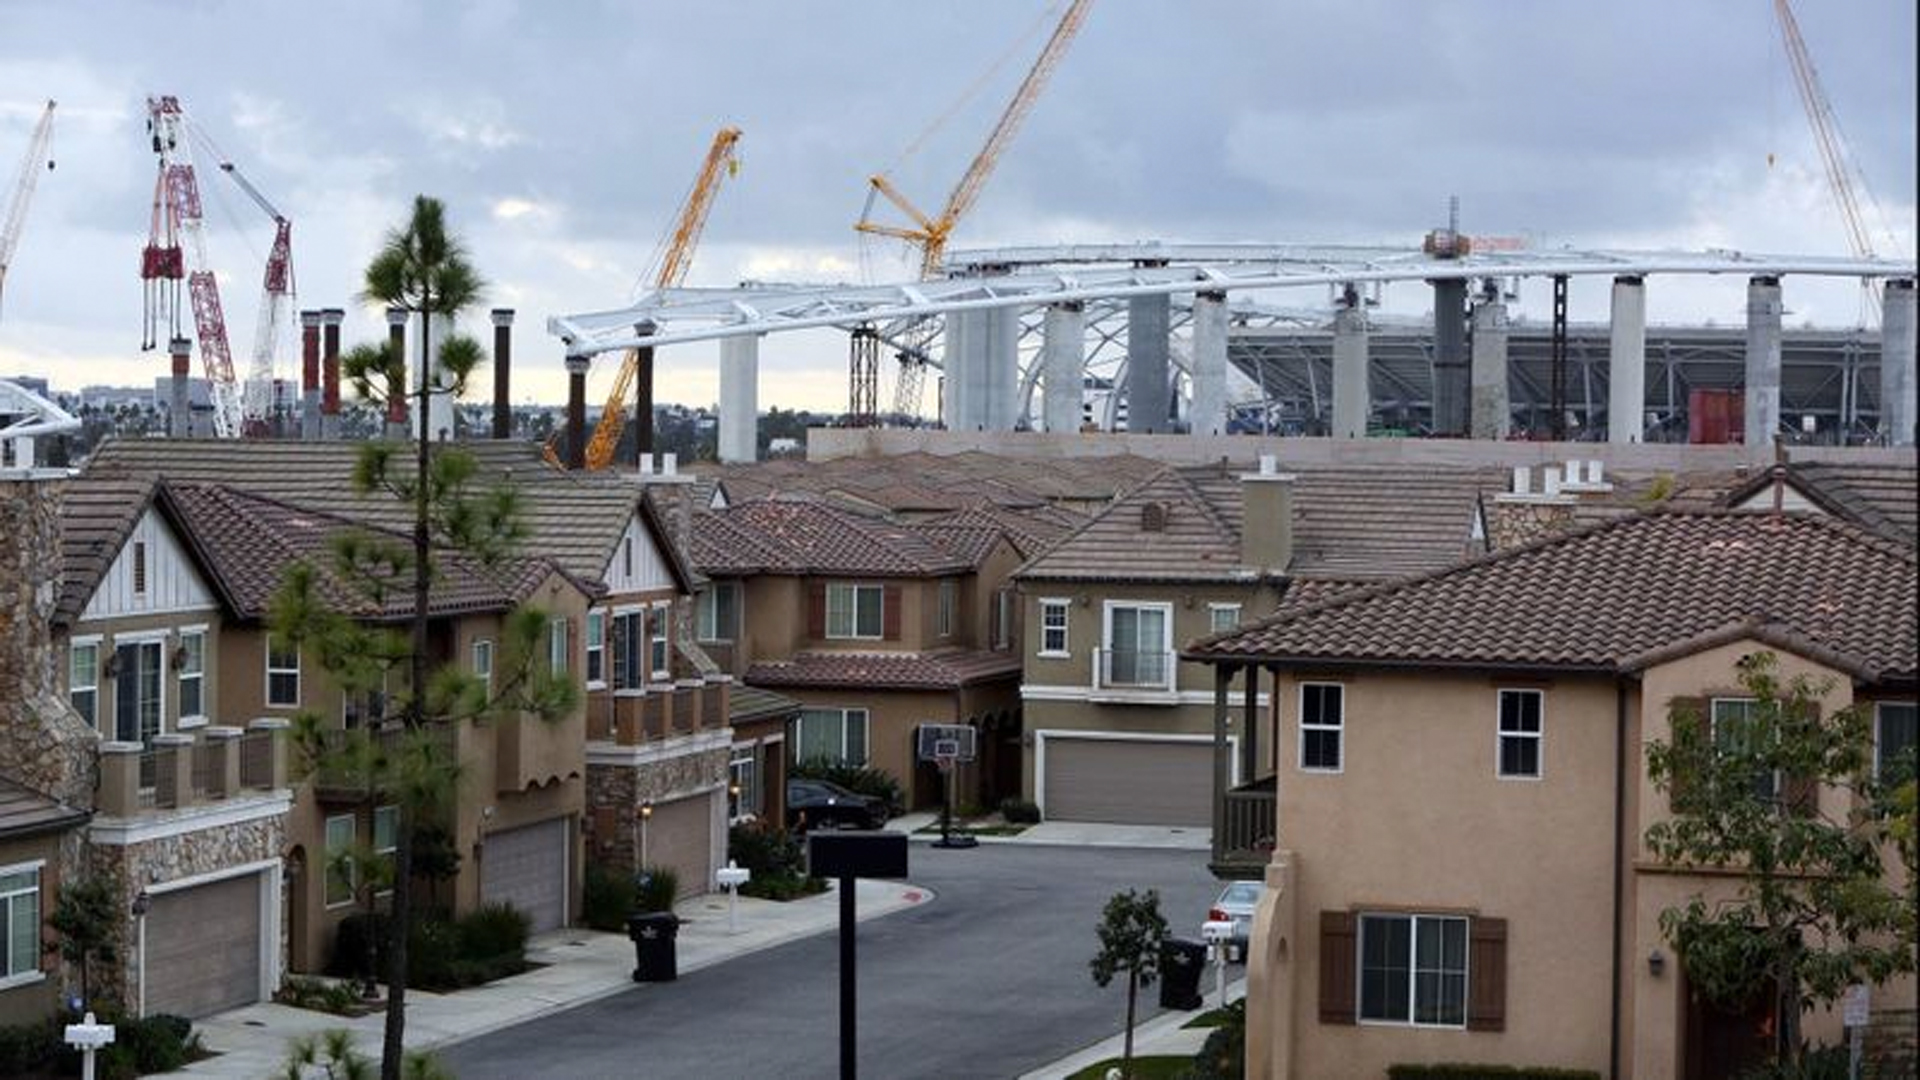 Construction of the Rams-Chargers Complex is seen behind the Renaissance Homes in Inglewood on Feb. 20. (Credit: Dania Maxwell / Los Angeles Times)